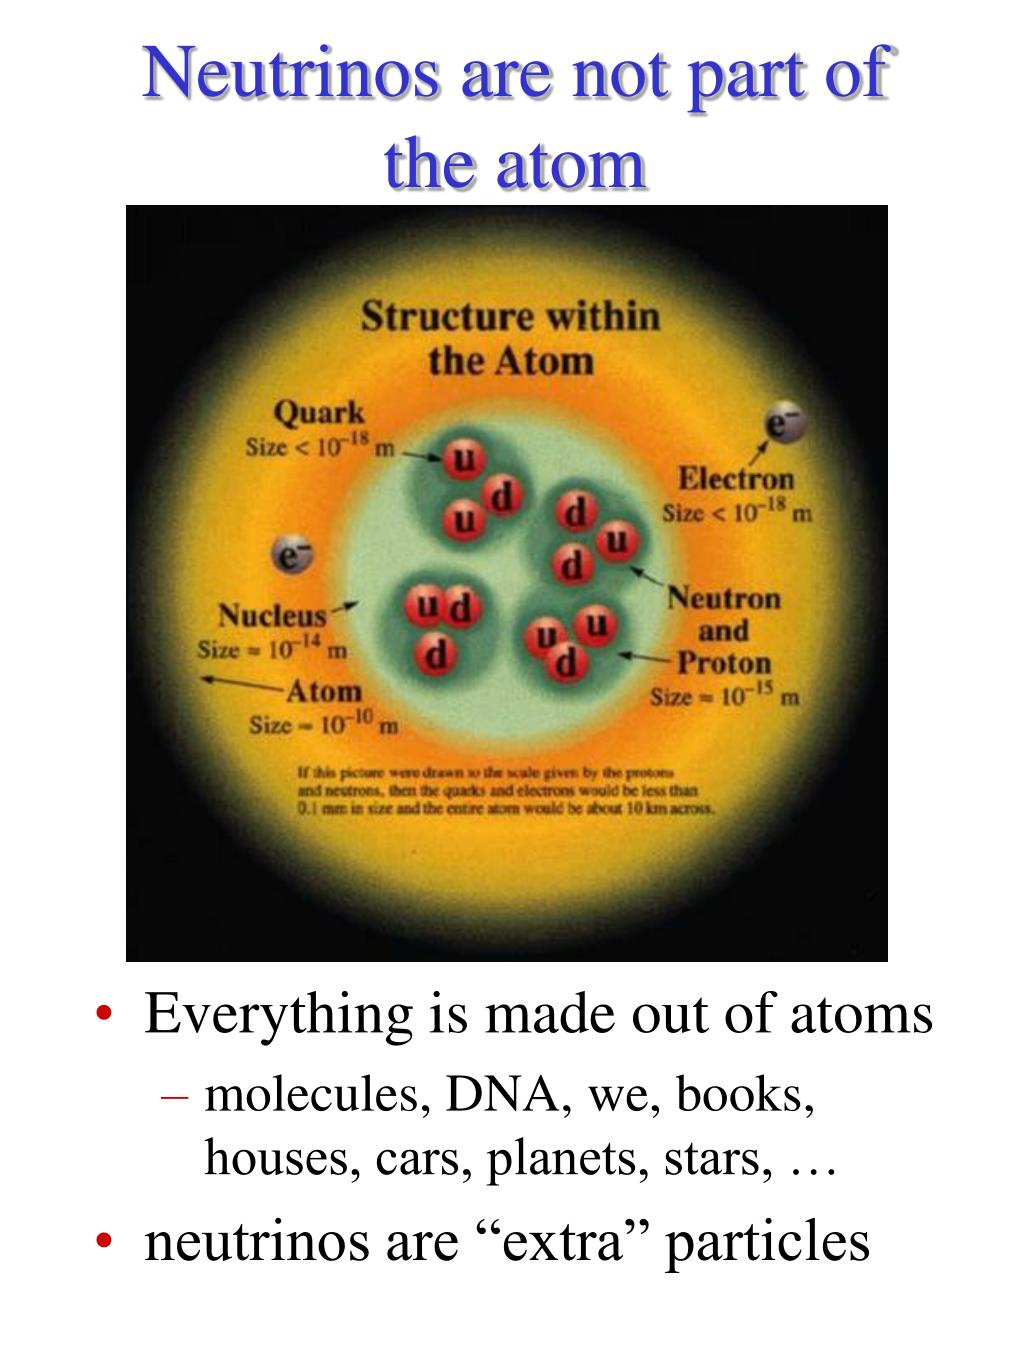 Neutrinos are not part of the atom